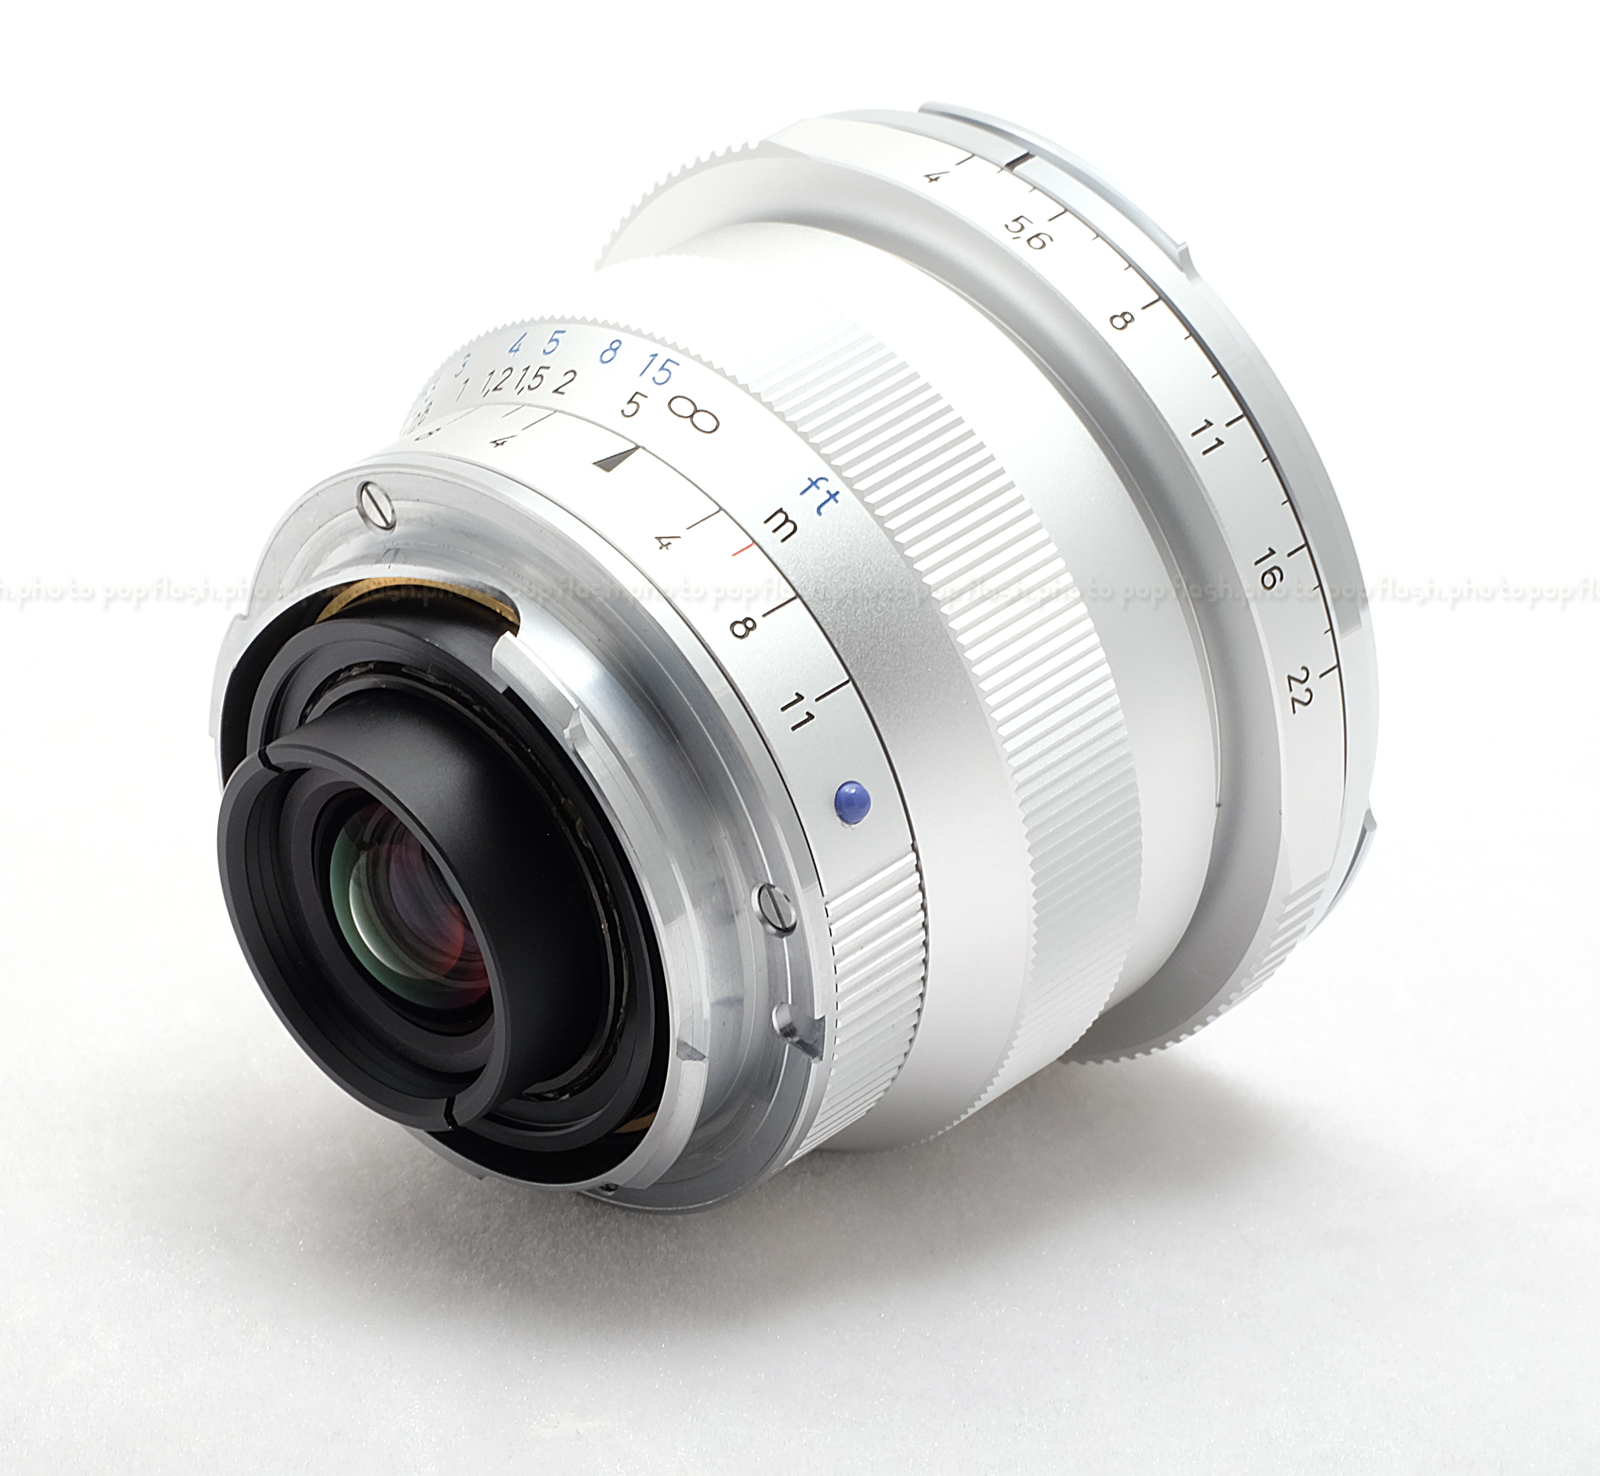 Zeiss Distagon 18mm F 4 T Silver Zm Lens Usa New